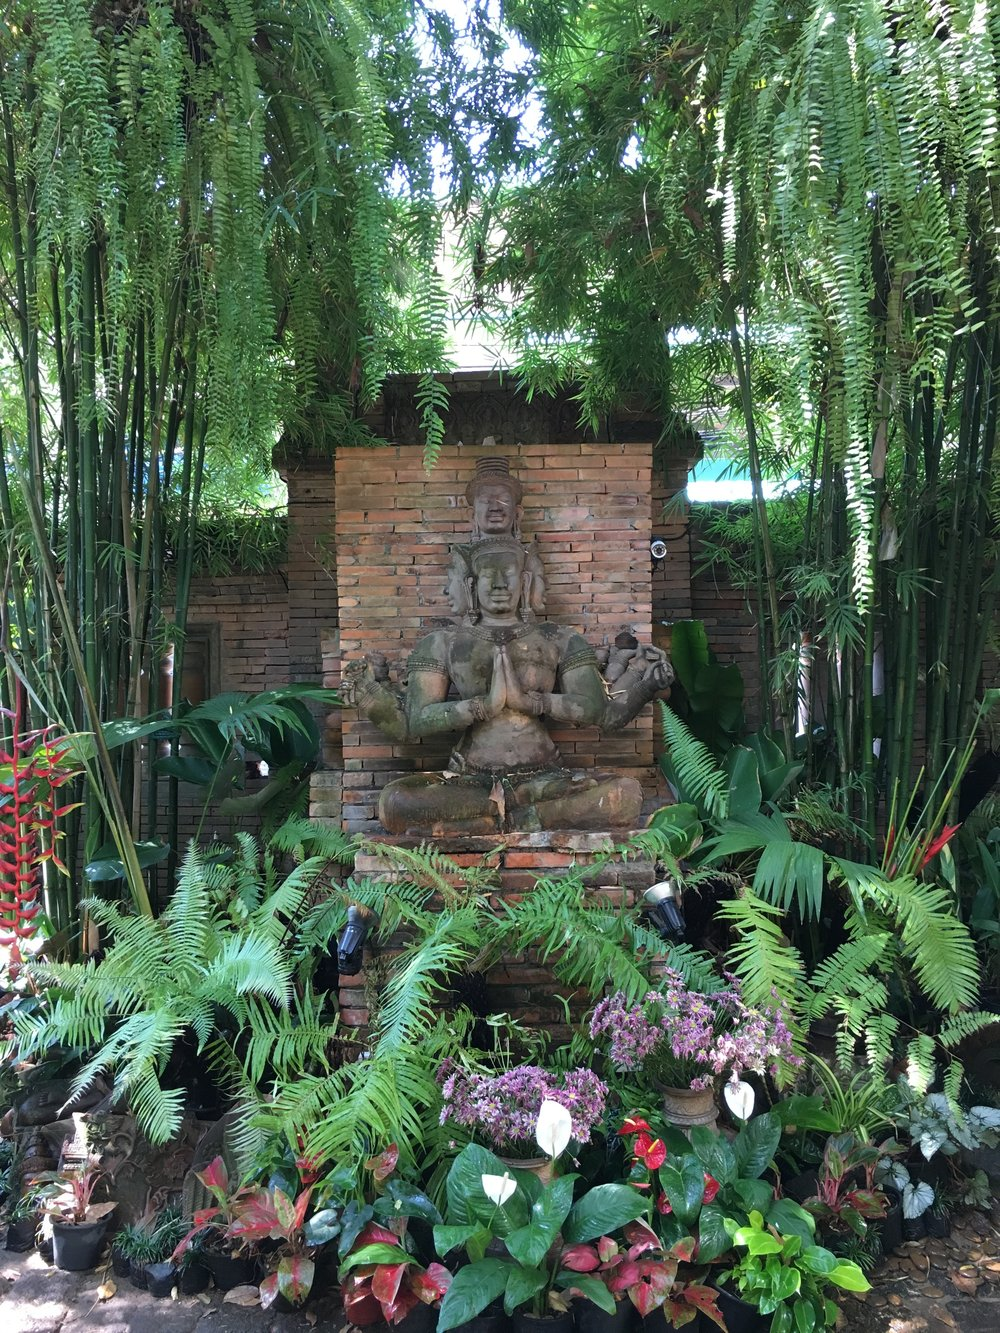 Terracotta art works and lush plantings make a stunning combination!